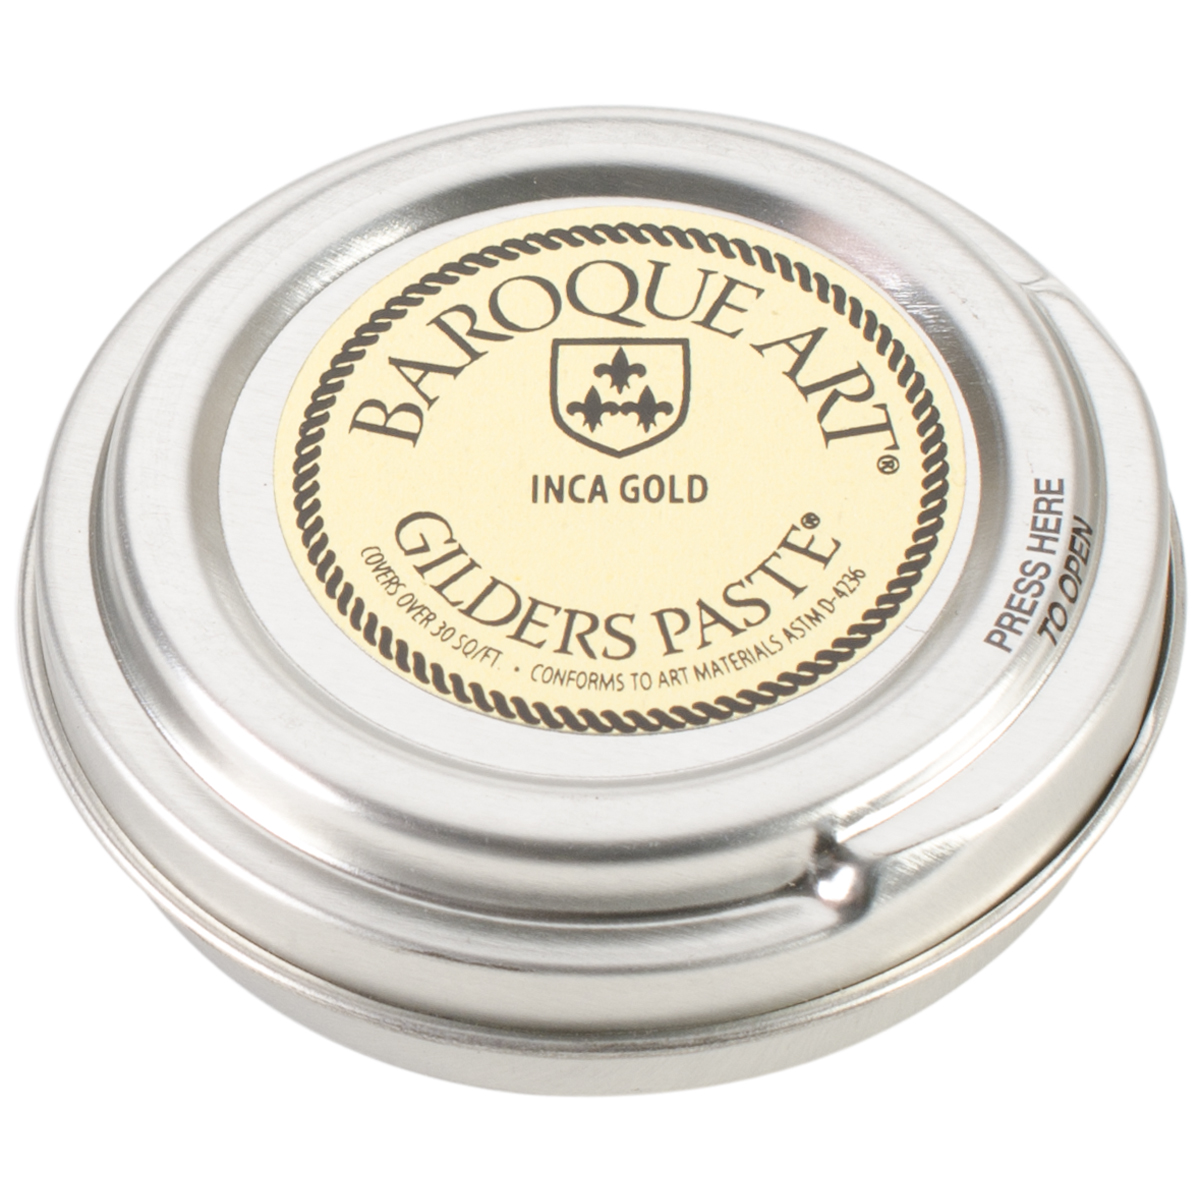 Baroque Art Gilders Paste 1oz-Inca Gold